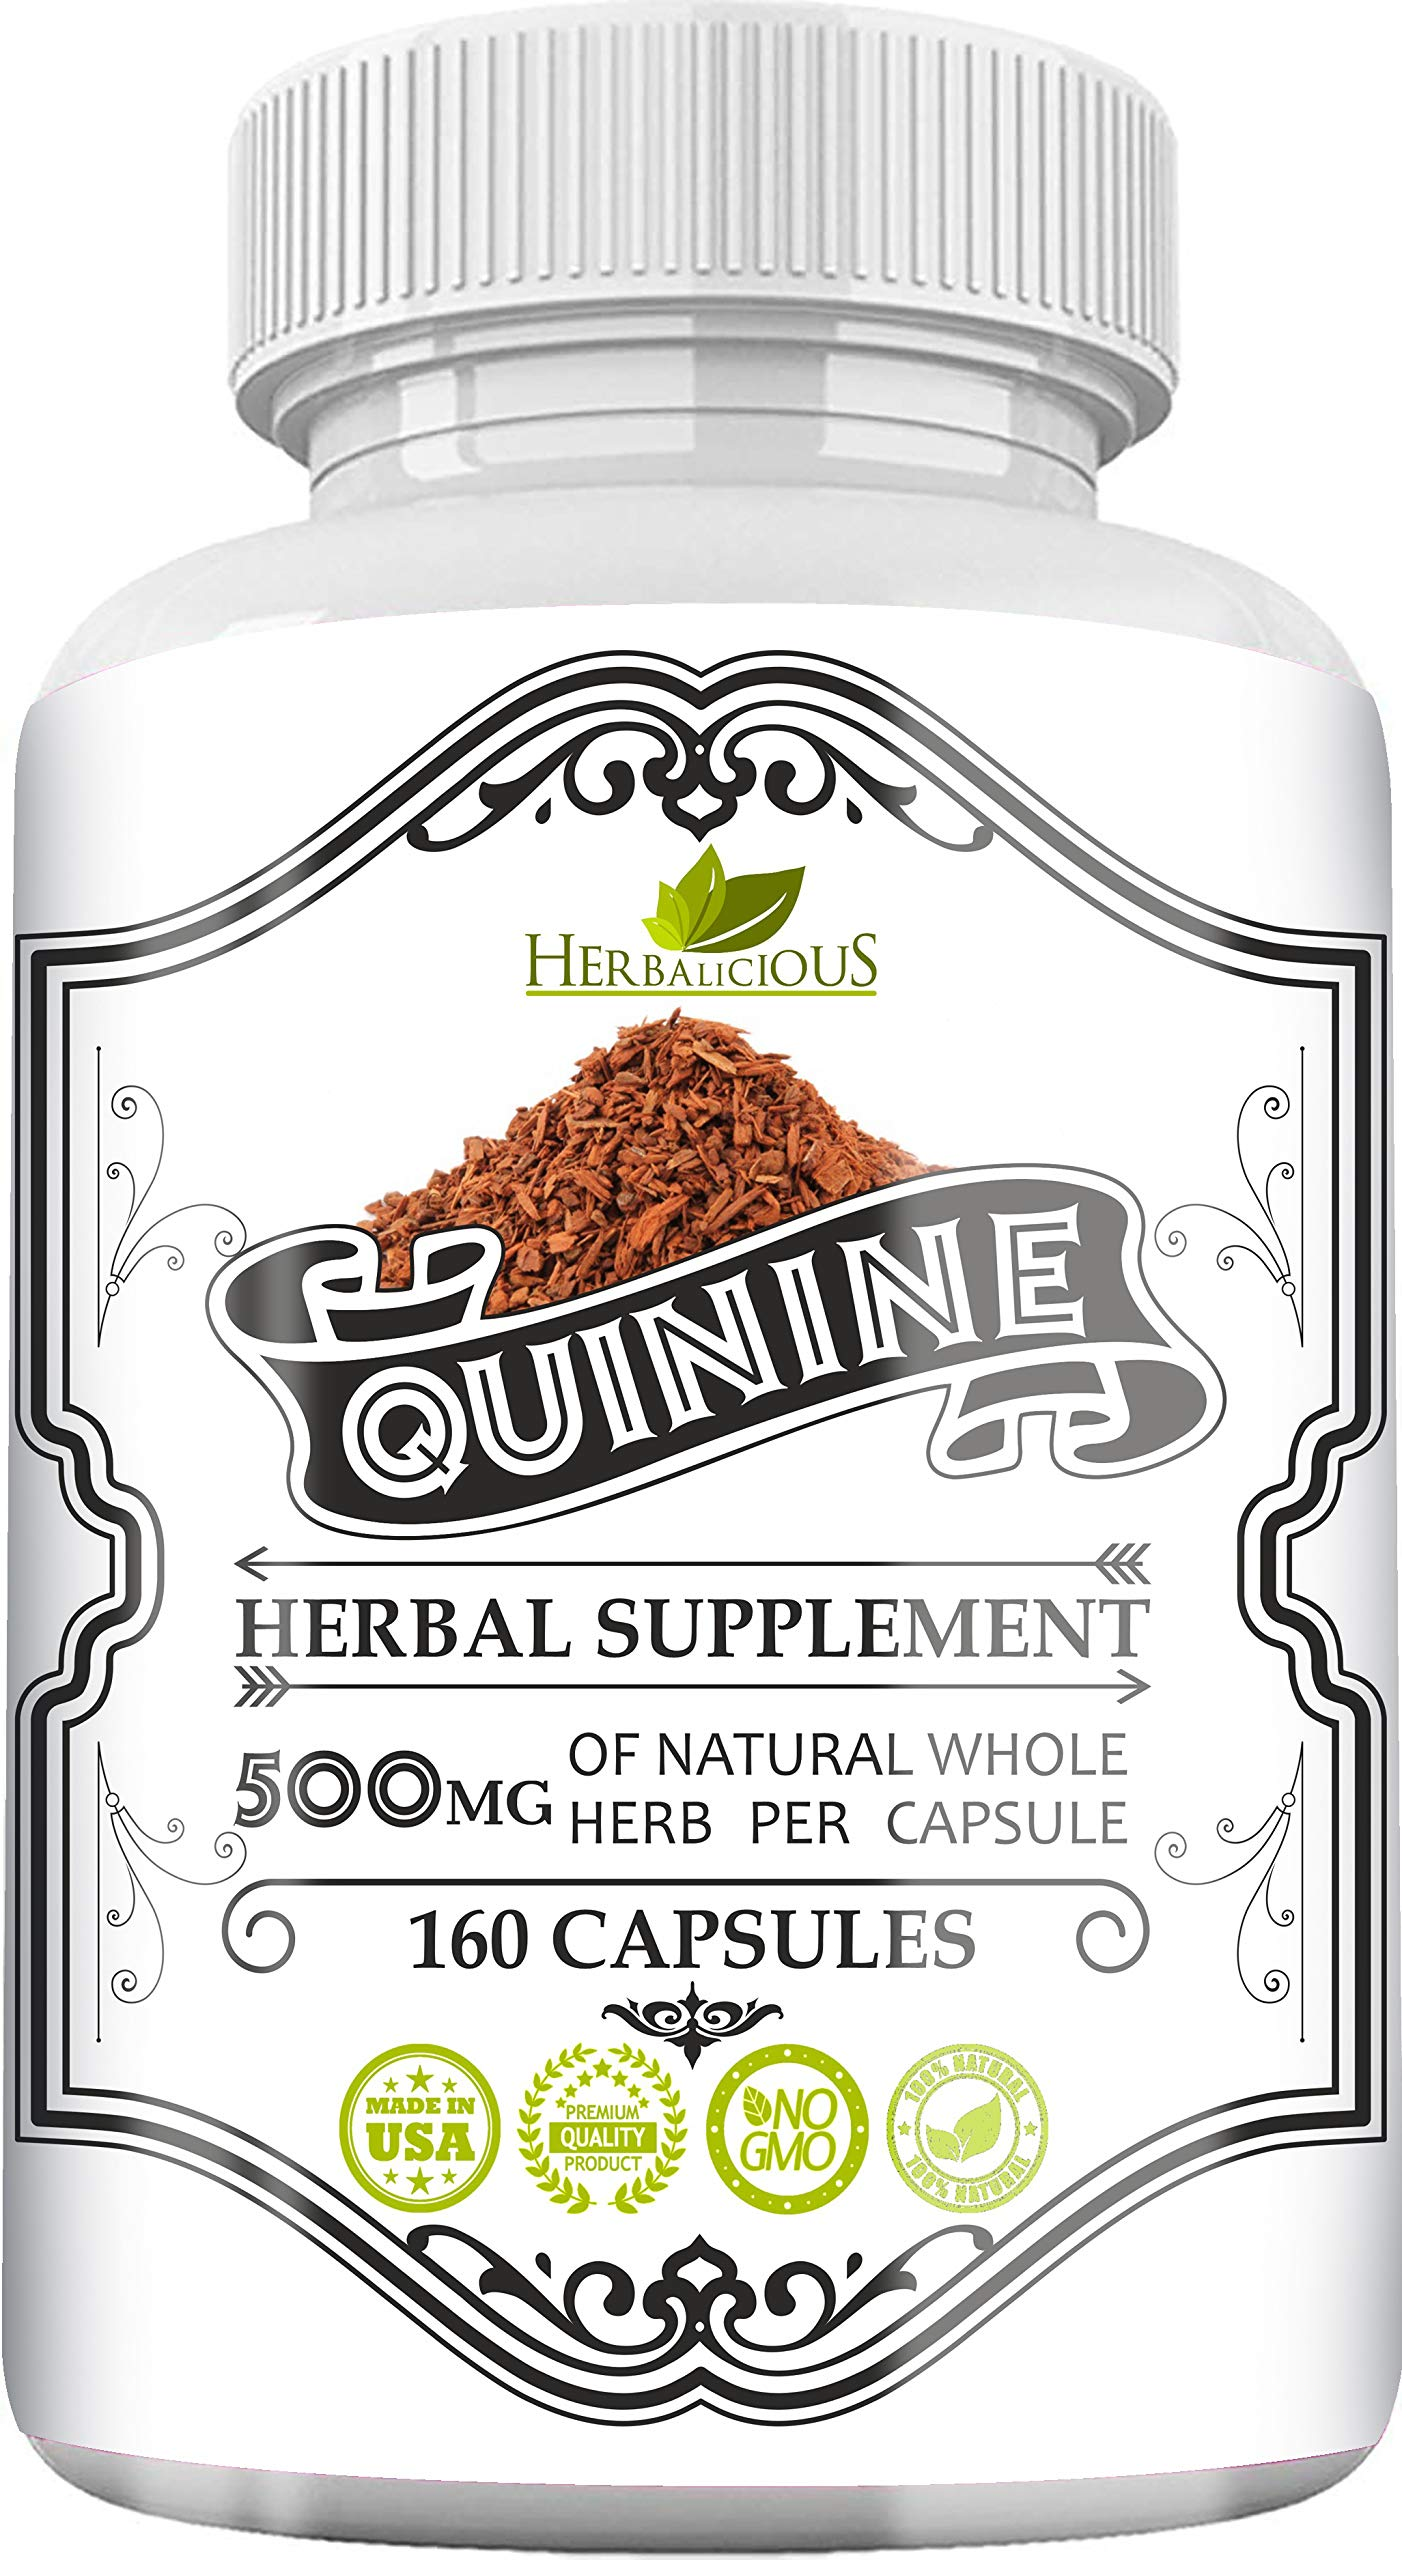 HERBALICIOUS Quinine Capsules - Cinchona Officinalis Bark Herbal Supplement for Leg Cramping Relief, Cramp Defense and Overall Digestive Health - All-Natural Quinine Sulfate Pills, 500mg, 160 Tablets